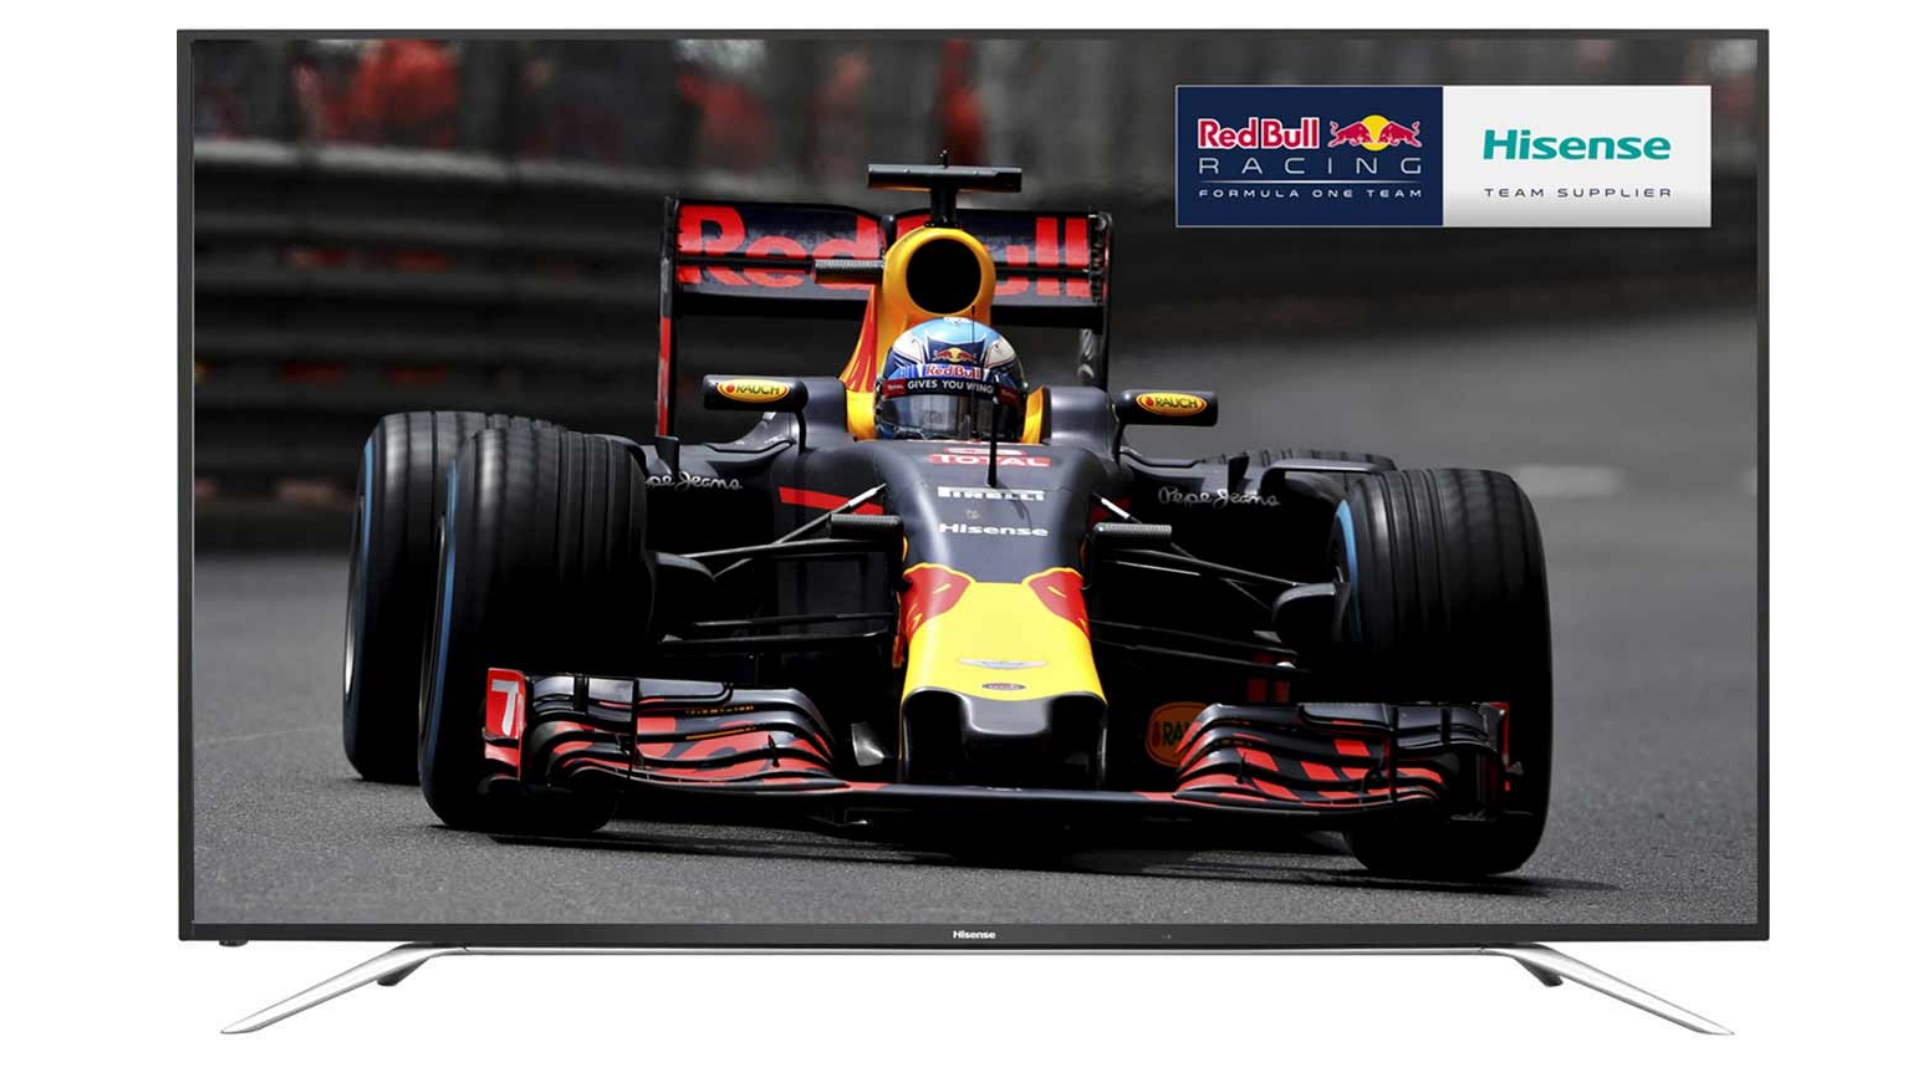 Best TV Deals - Discount TV Sales & Best TVs on Sale